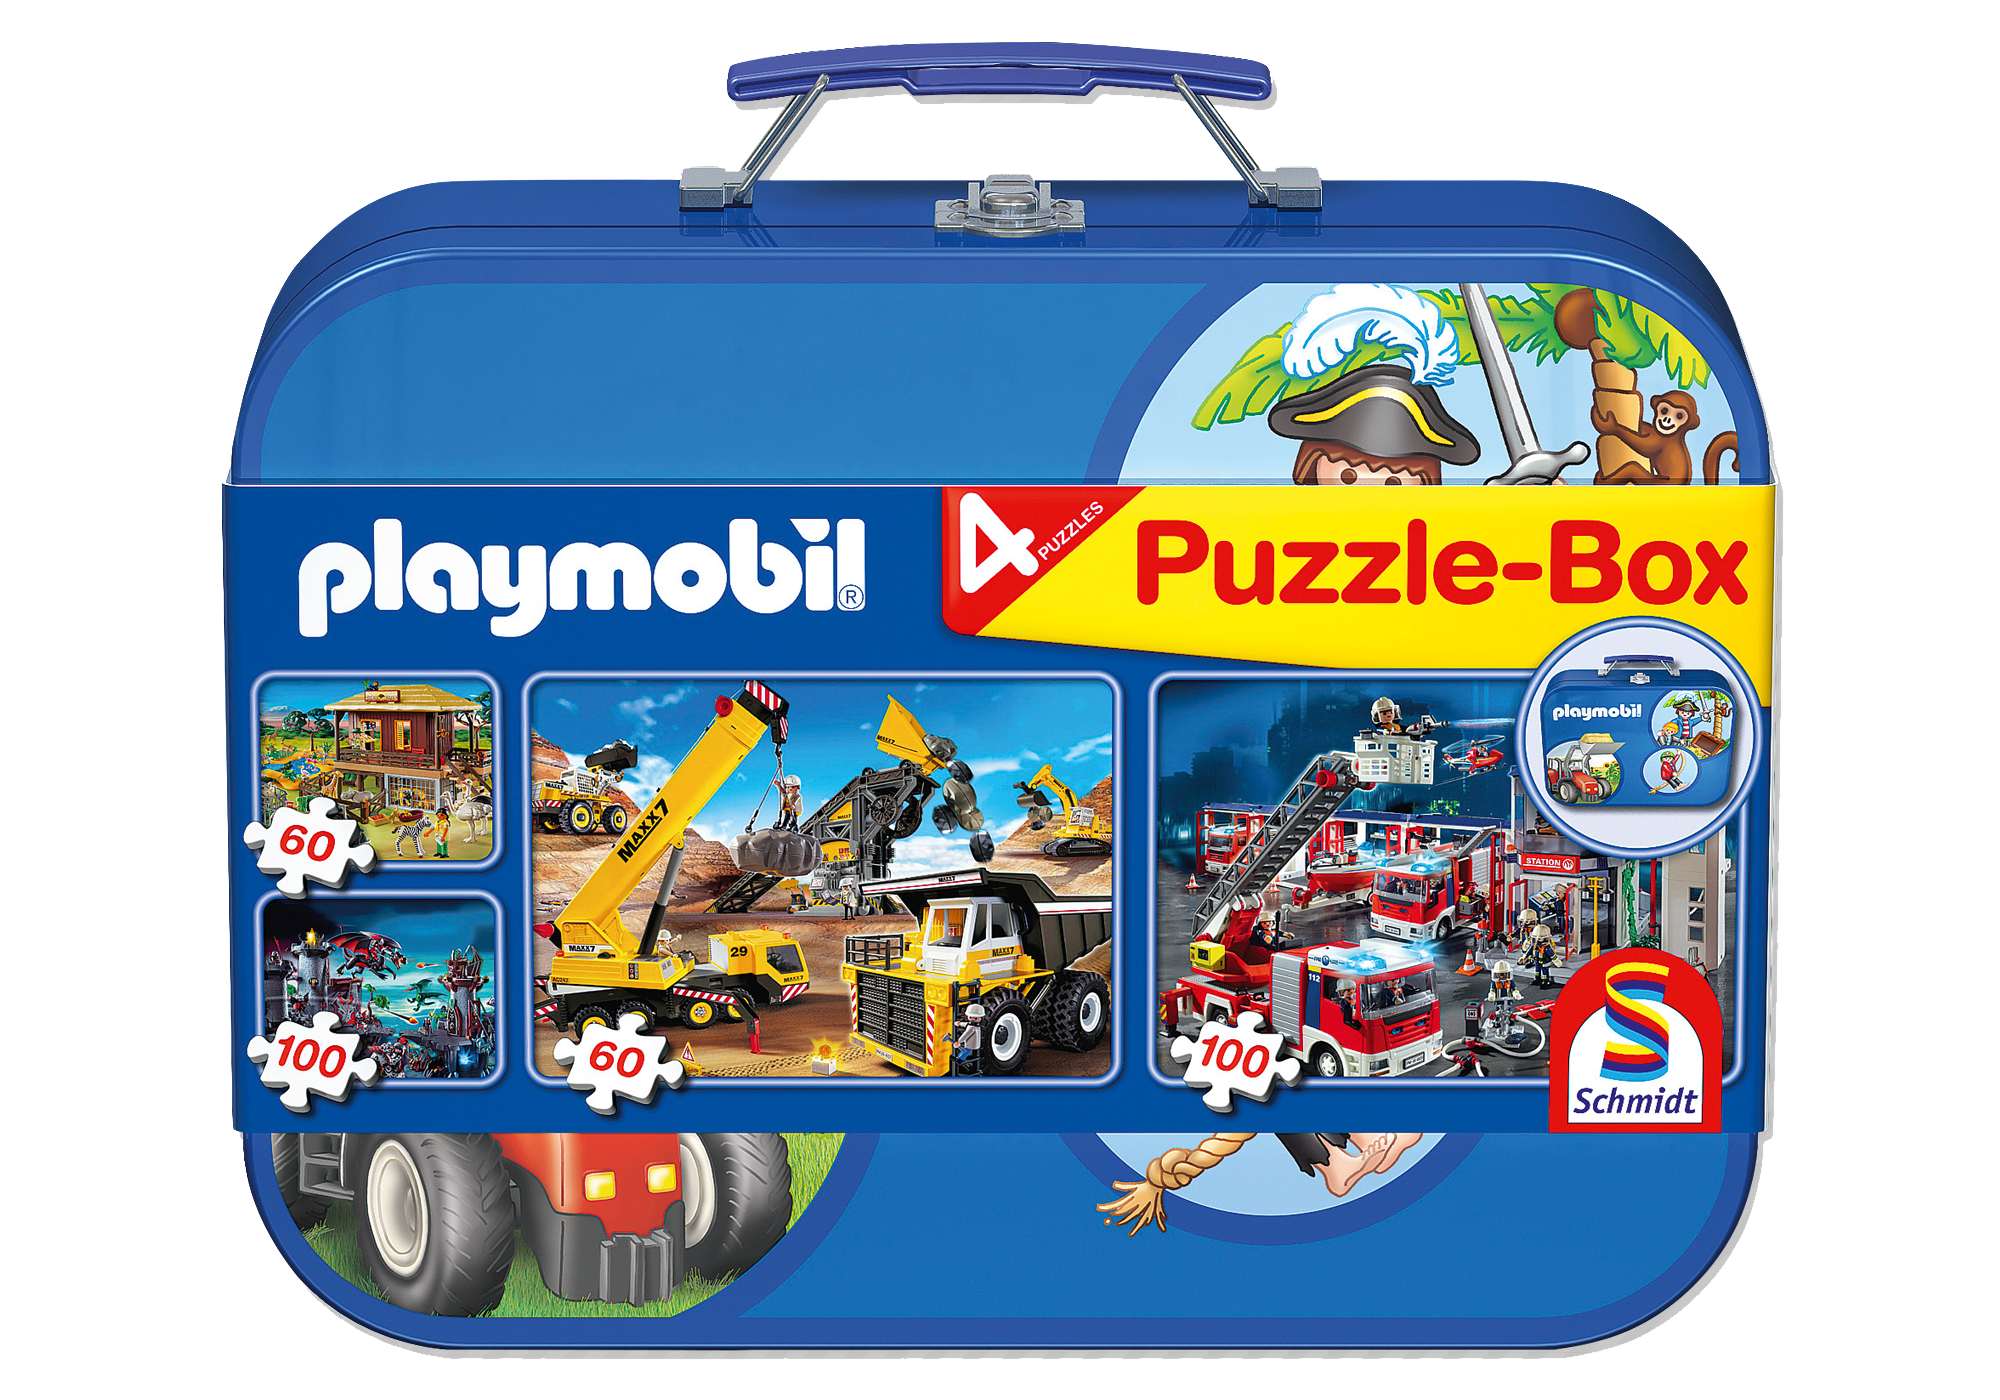 http://media.playmobil.com/i/playmobil/80247_product_detail/Puzzle Box with 4 Puzzles